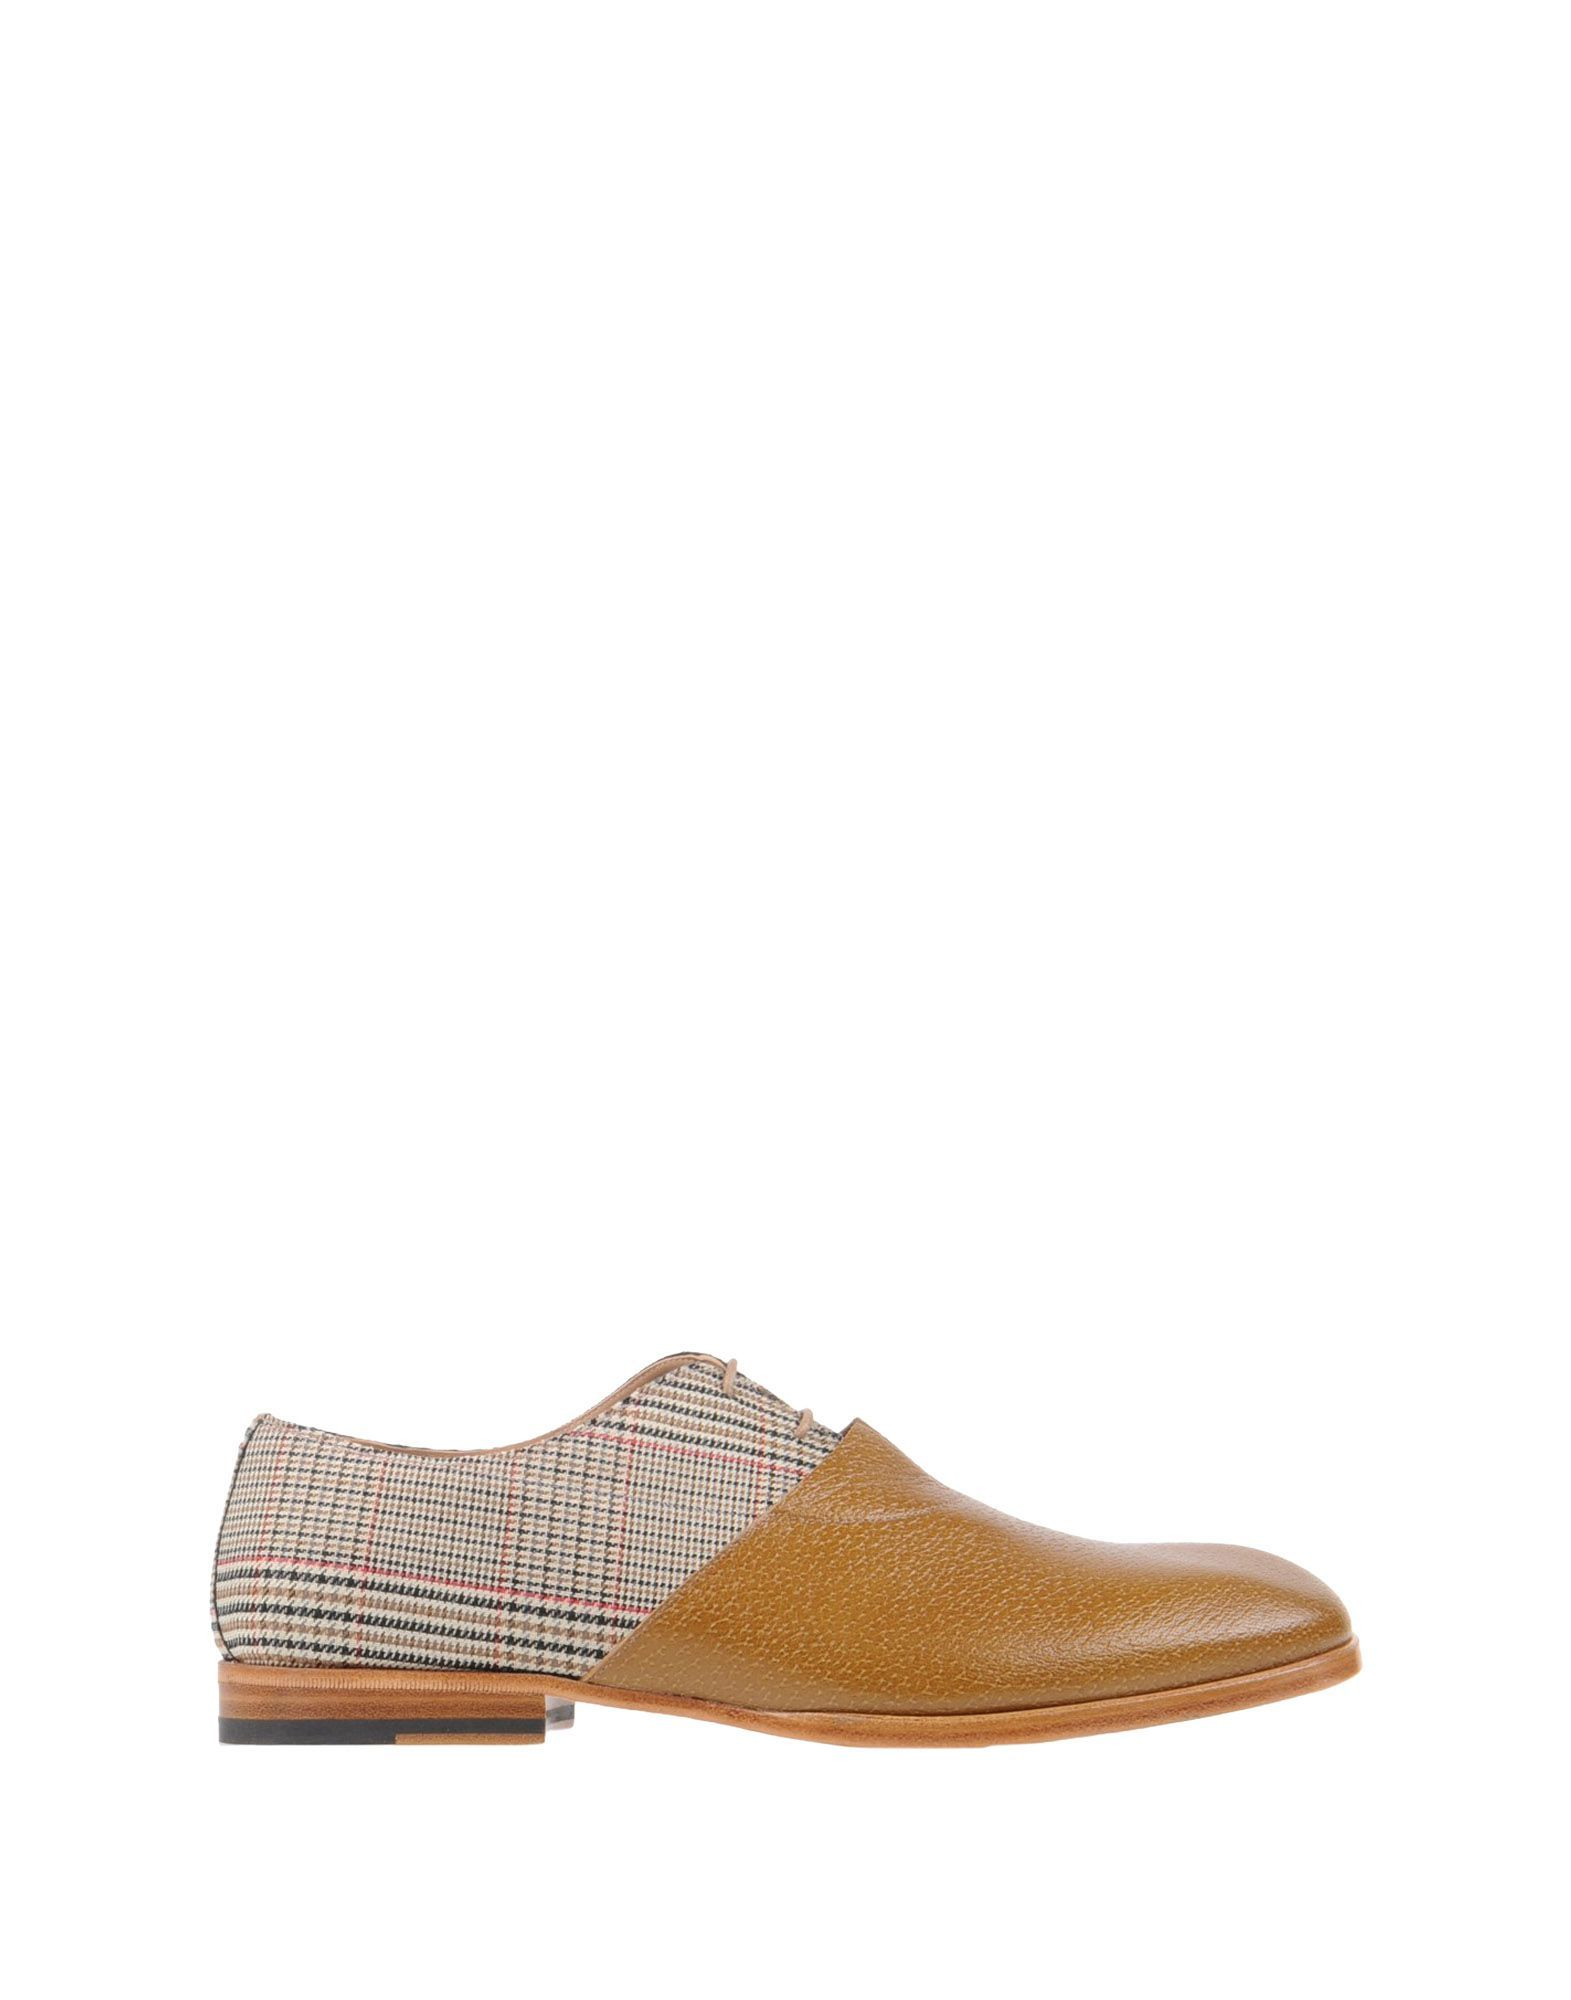 Maison martin margiela 22 Men - Footwear - Laced shoes Maison martin margiela 22 on YOOX